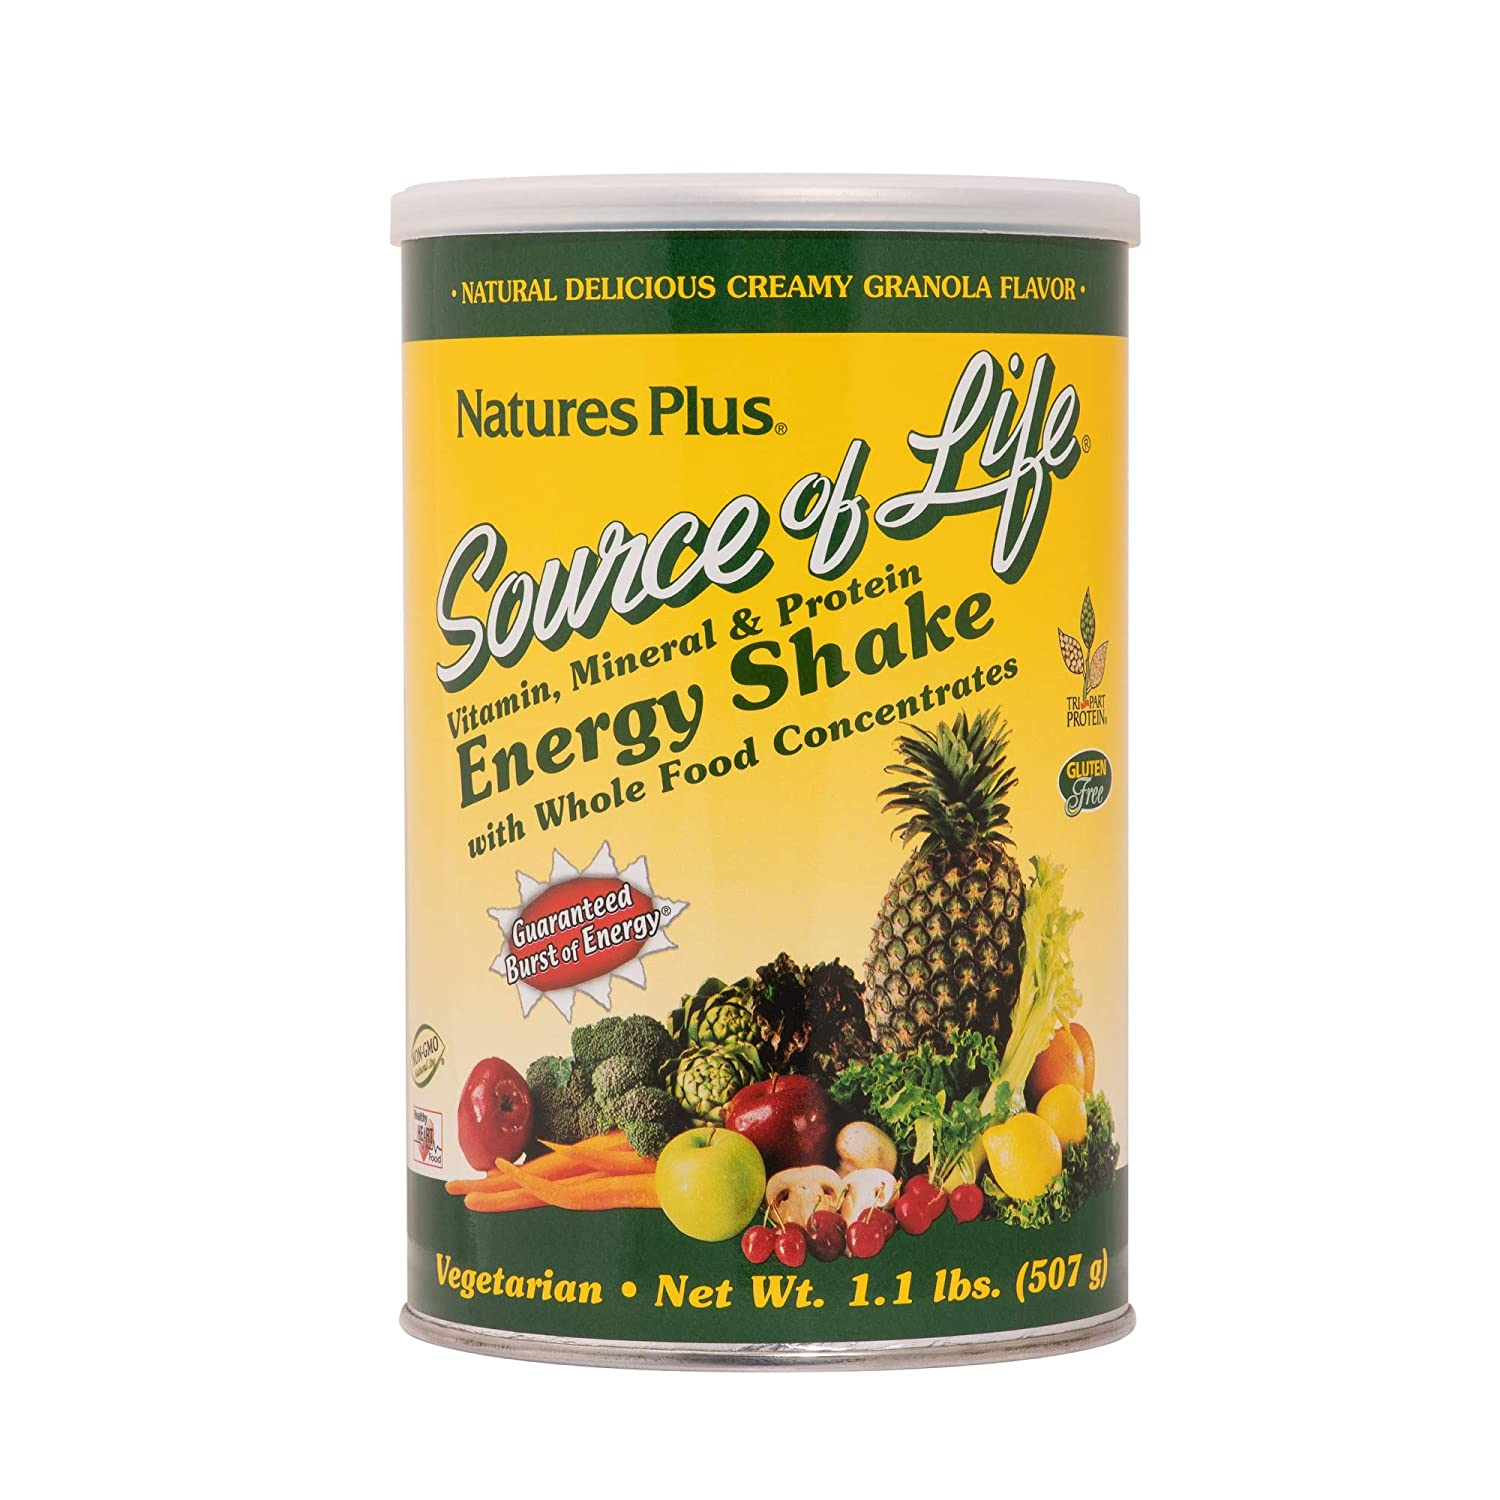 NaturesPlus Source of Life Energy Shake – 1.1 lbs Multivitamin, Mineral Protein Powder – Granola Flavor – Whole Food Meal Replacement – Non-GMO, Vegetarian, Gluten-Free – 13 Servings